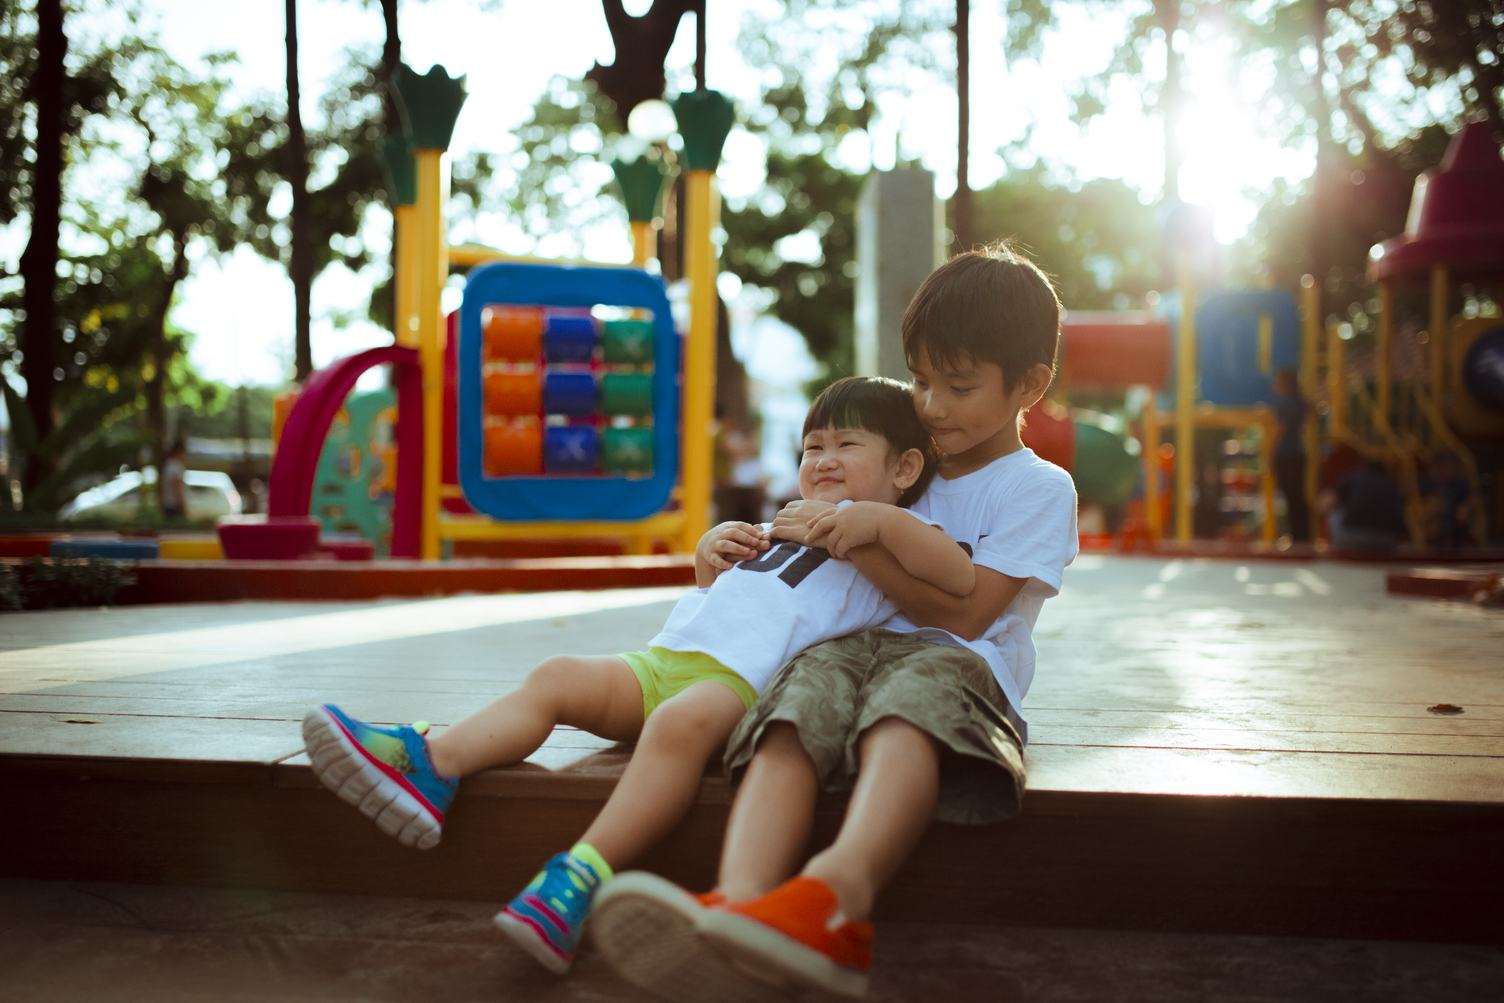 Two Asian Boys Playing Outdoors